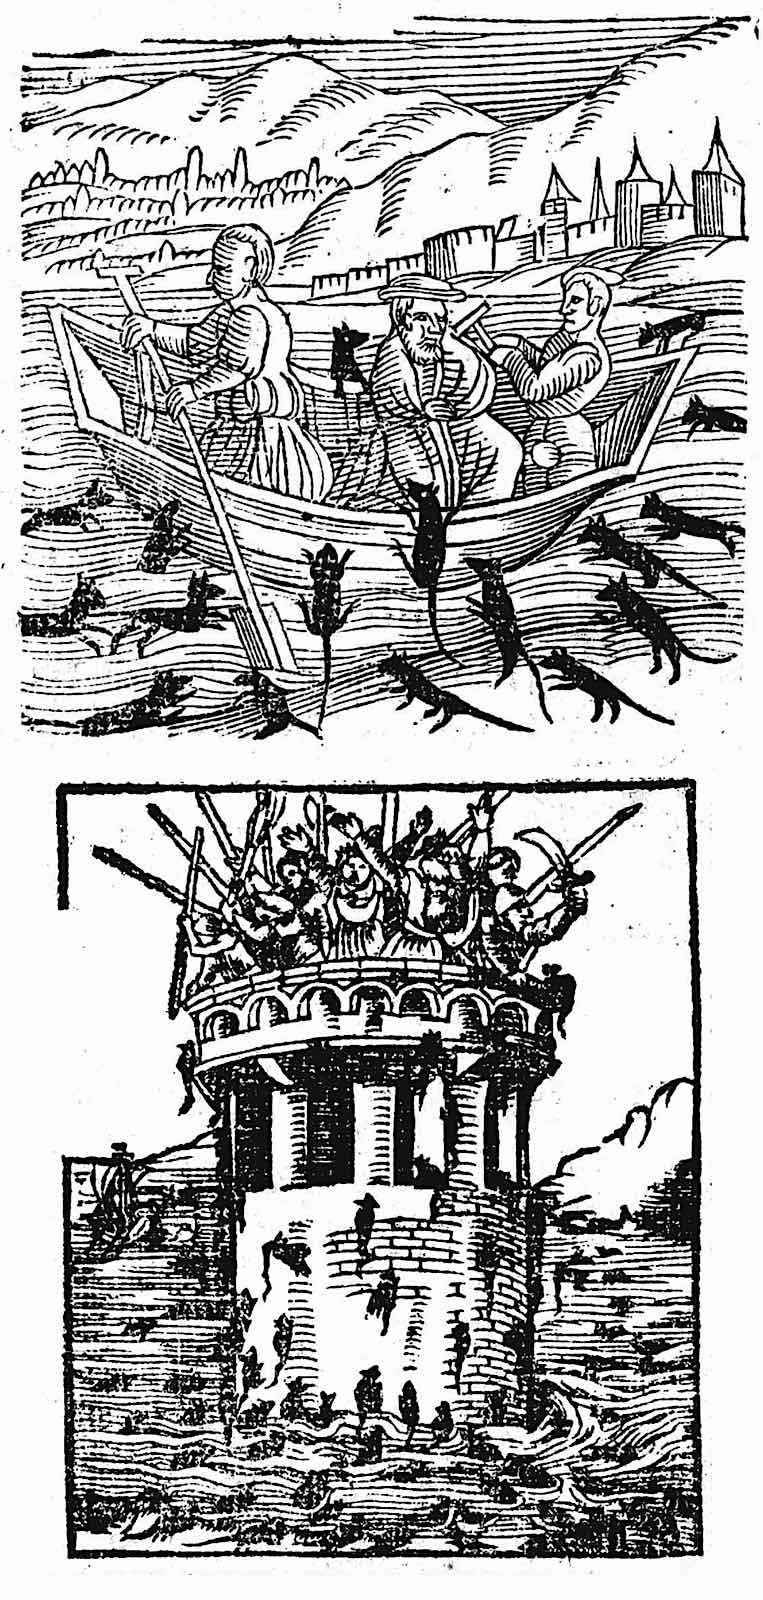 1557 illustrations of rats reacting to a flood